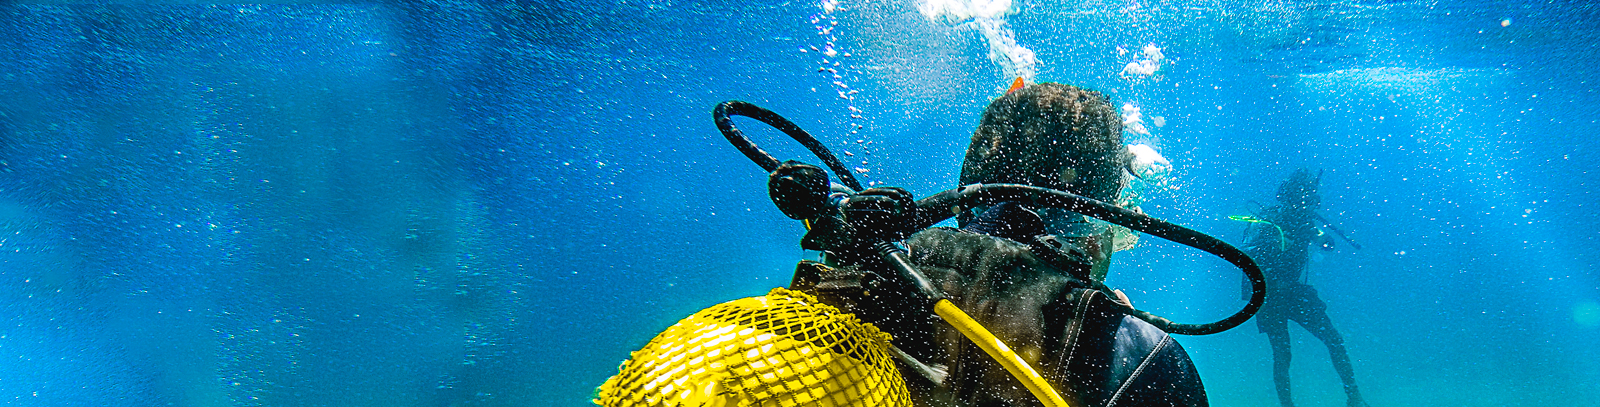 Los Cabos Resort offering Extreme Adventure Package